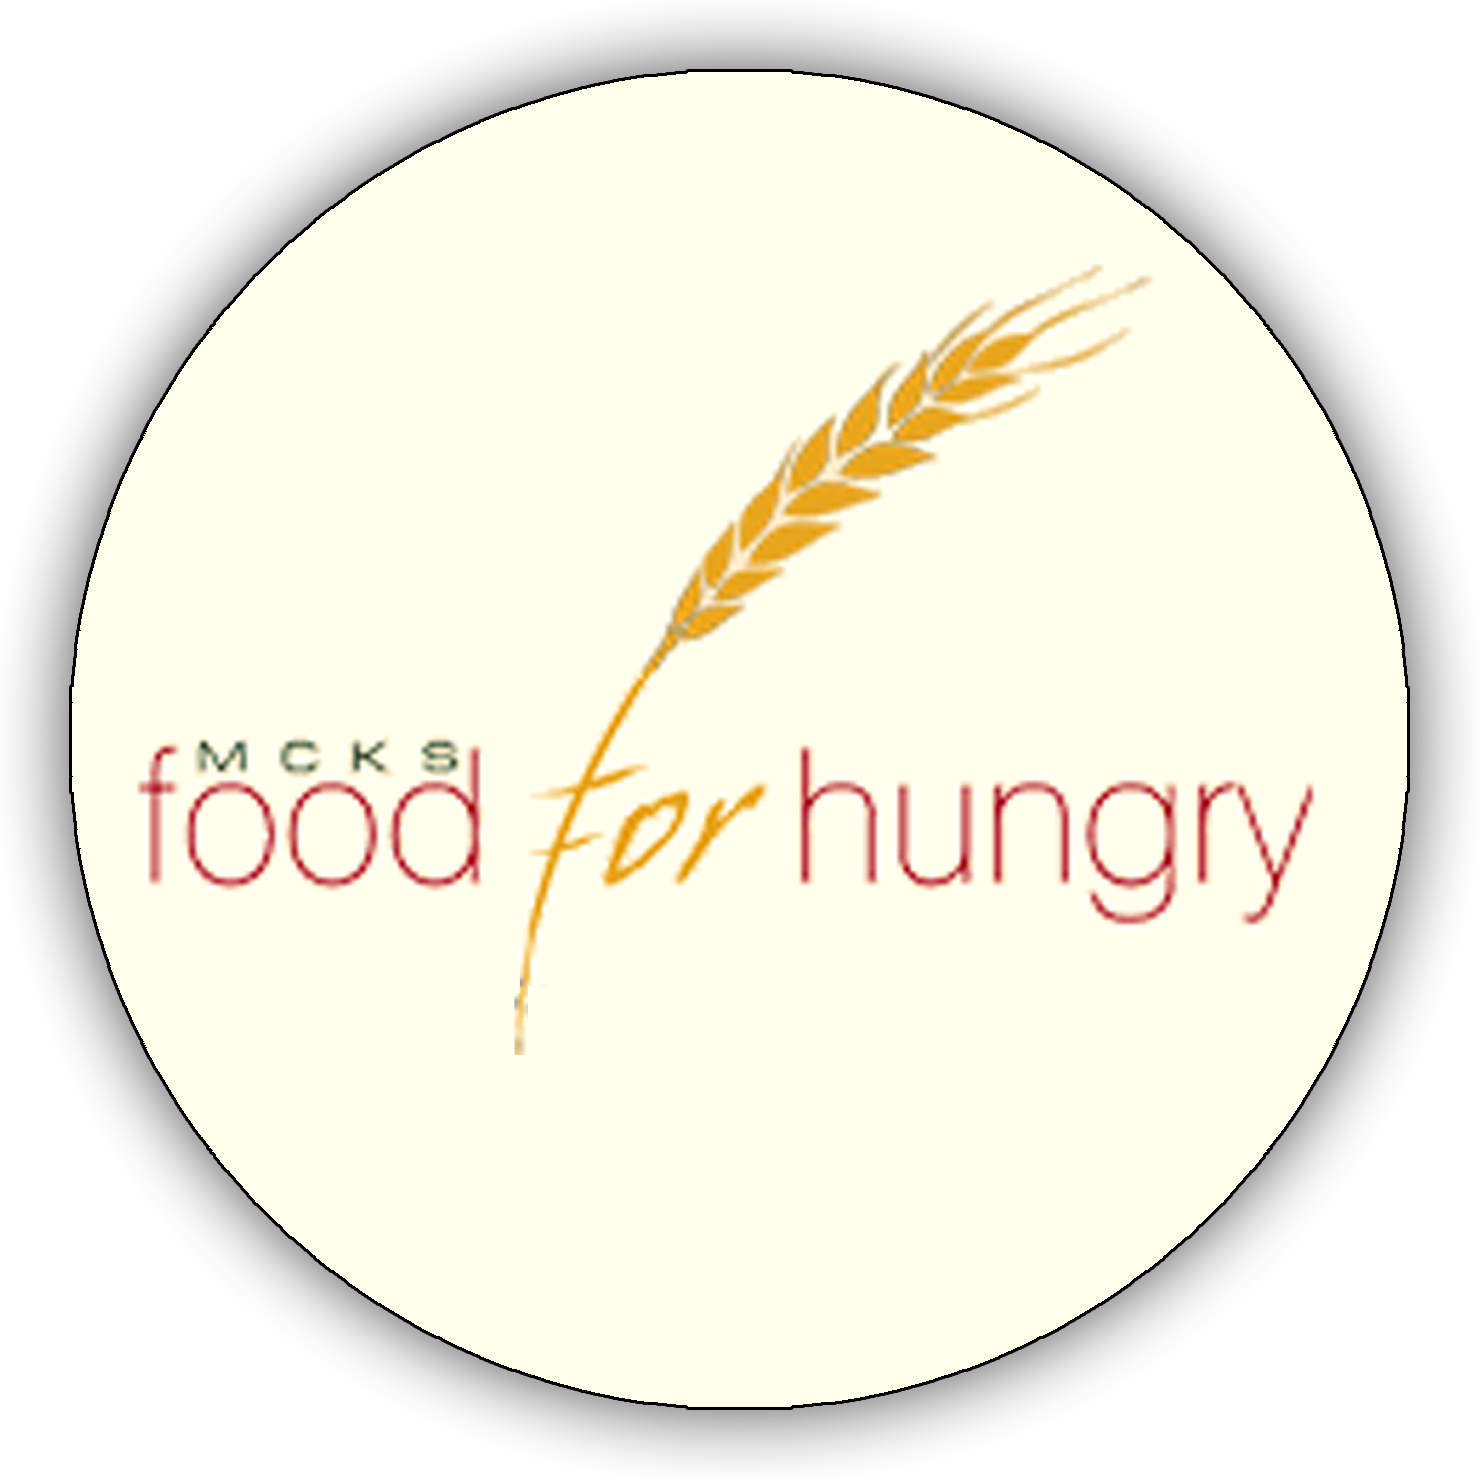 MCKS Food for Hungry